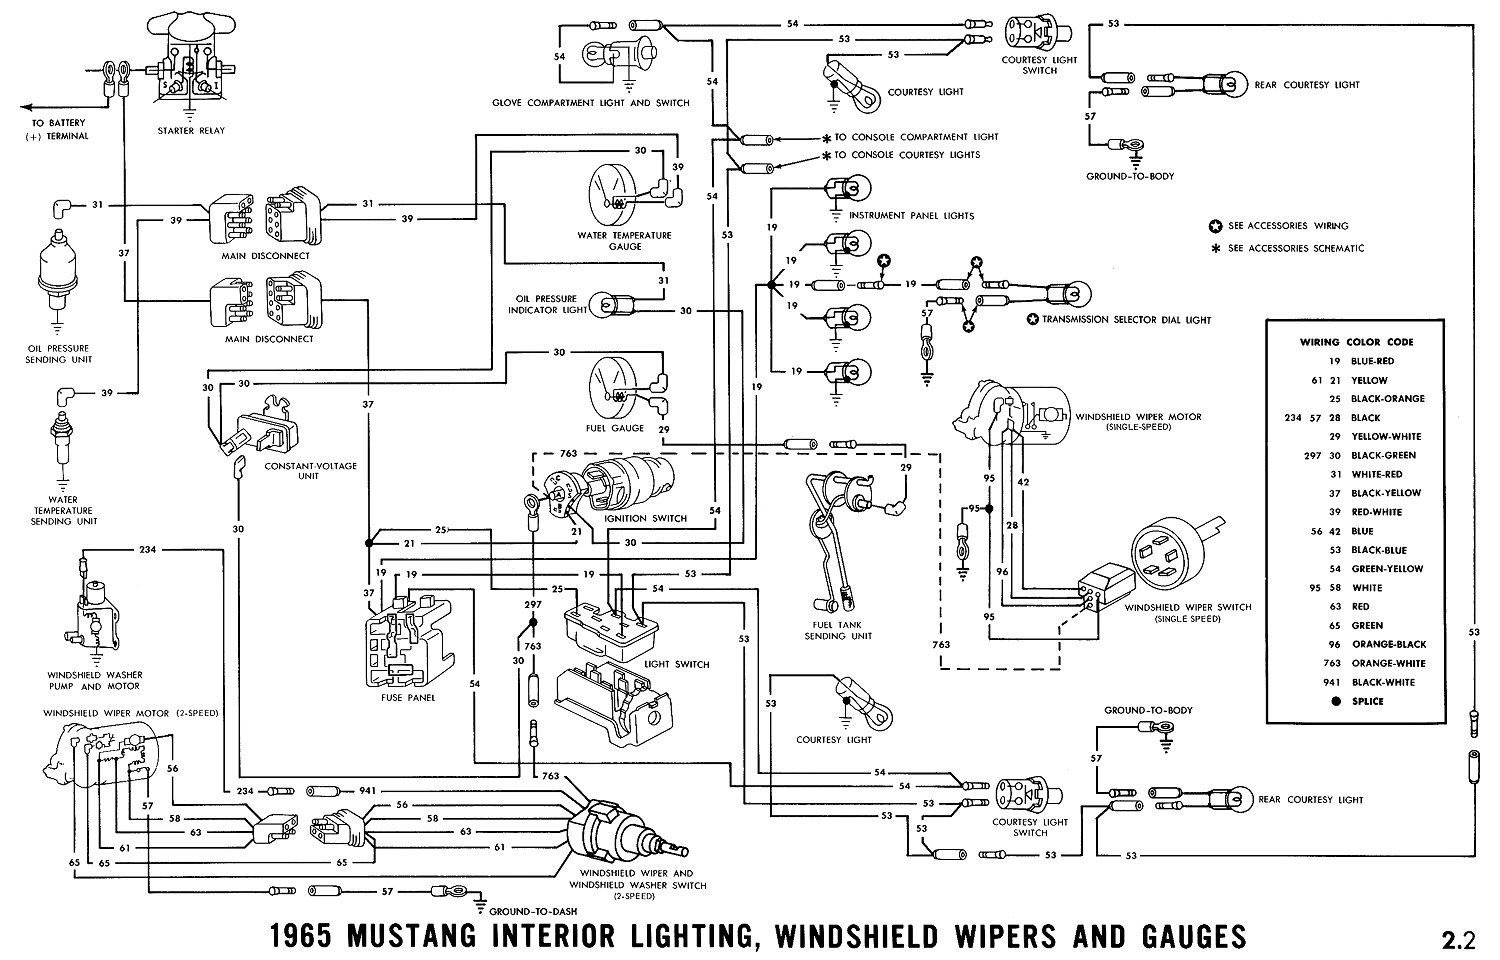 1979 Camaro Color Wiring Schematic Wire Data Schema 1965 Mustang Diagrams Average Joe Restoration 1972 Chevy Diagram Radio